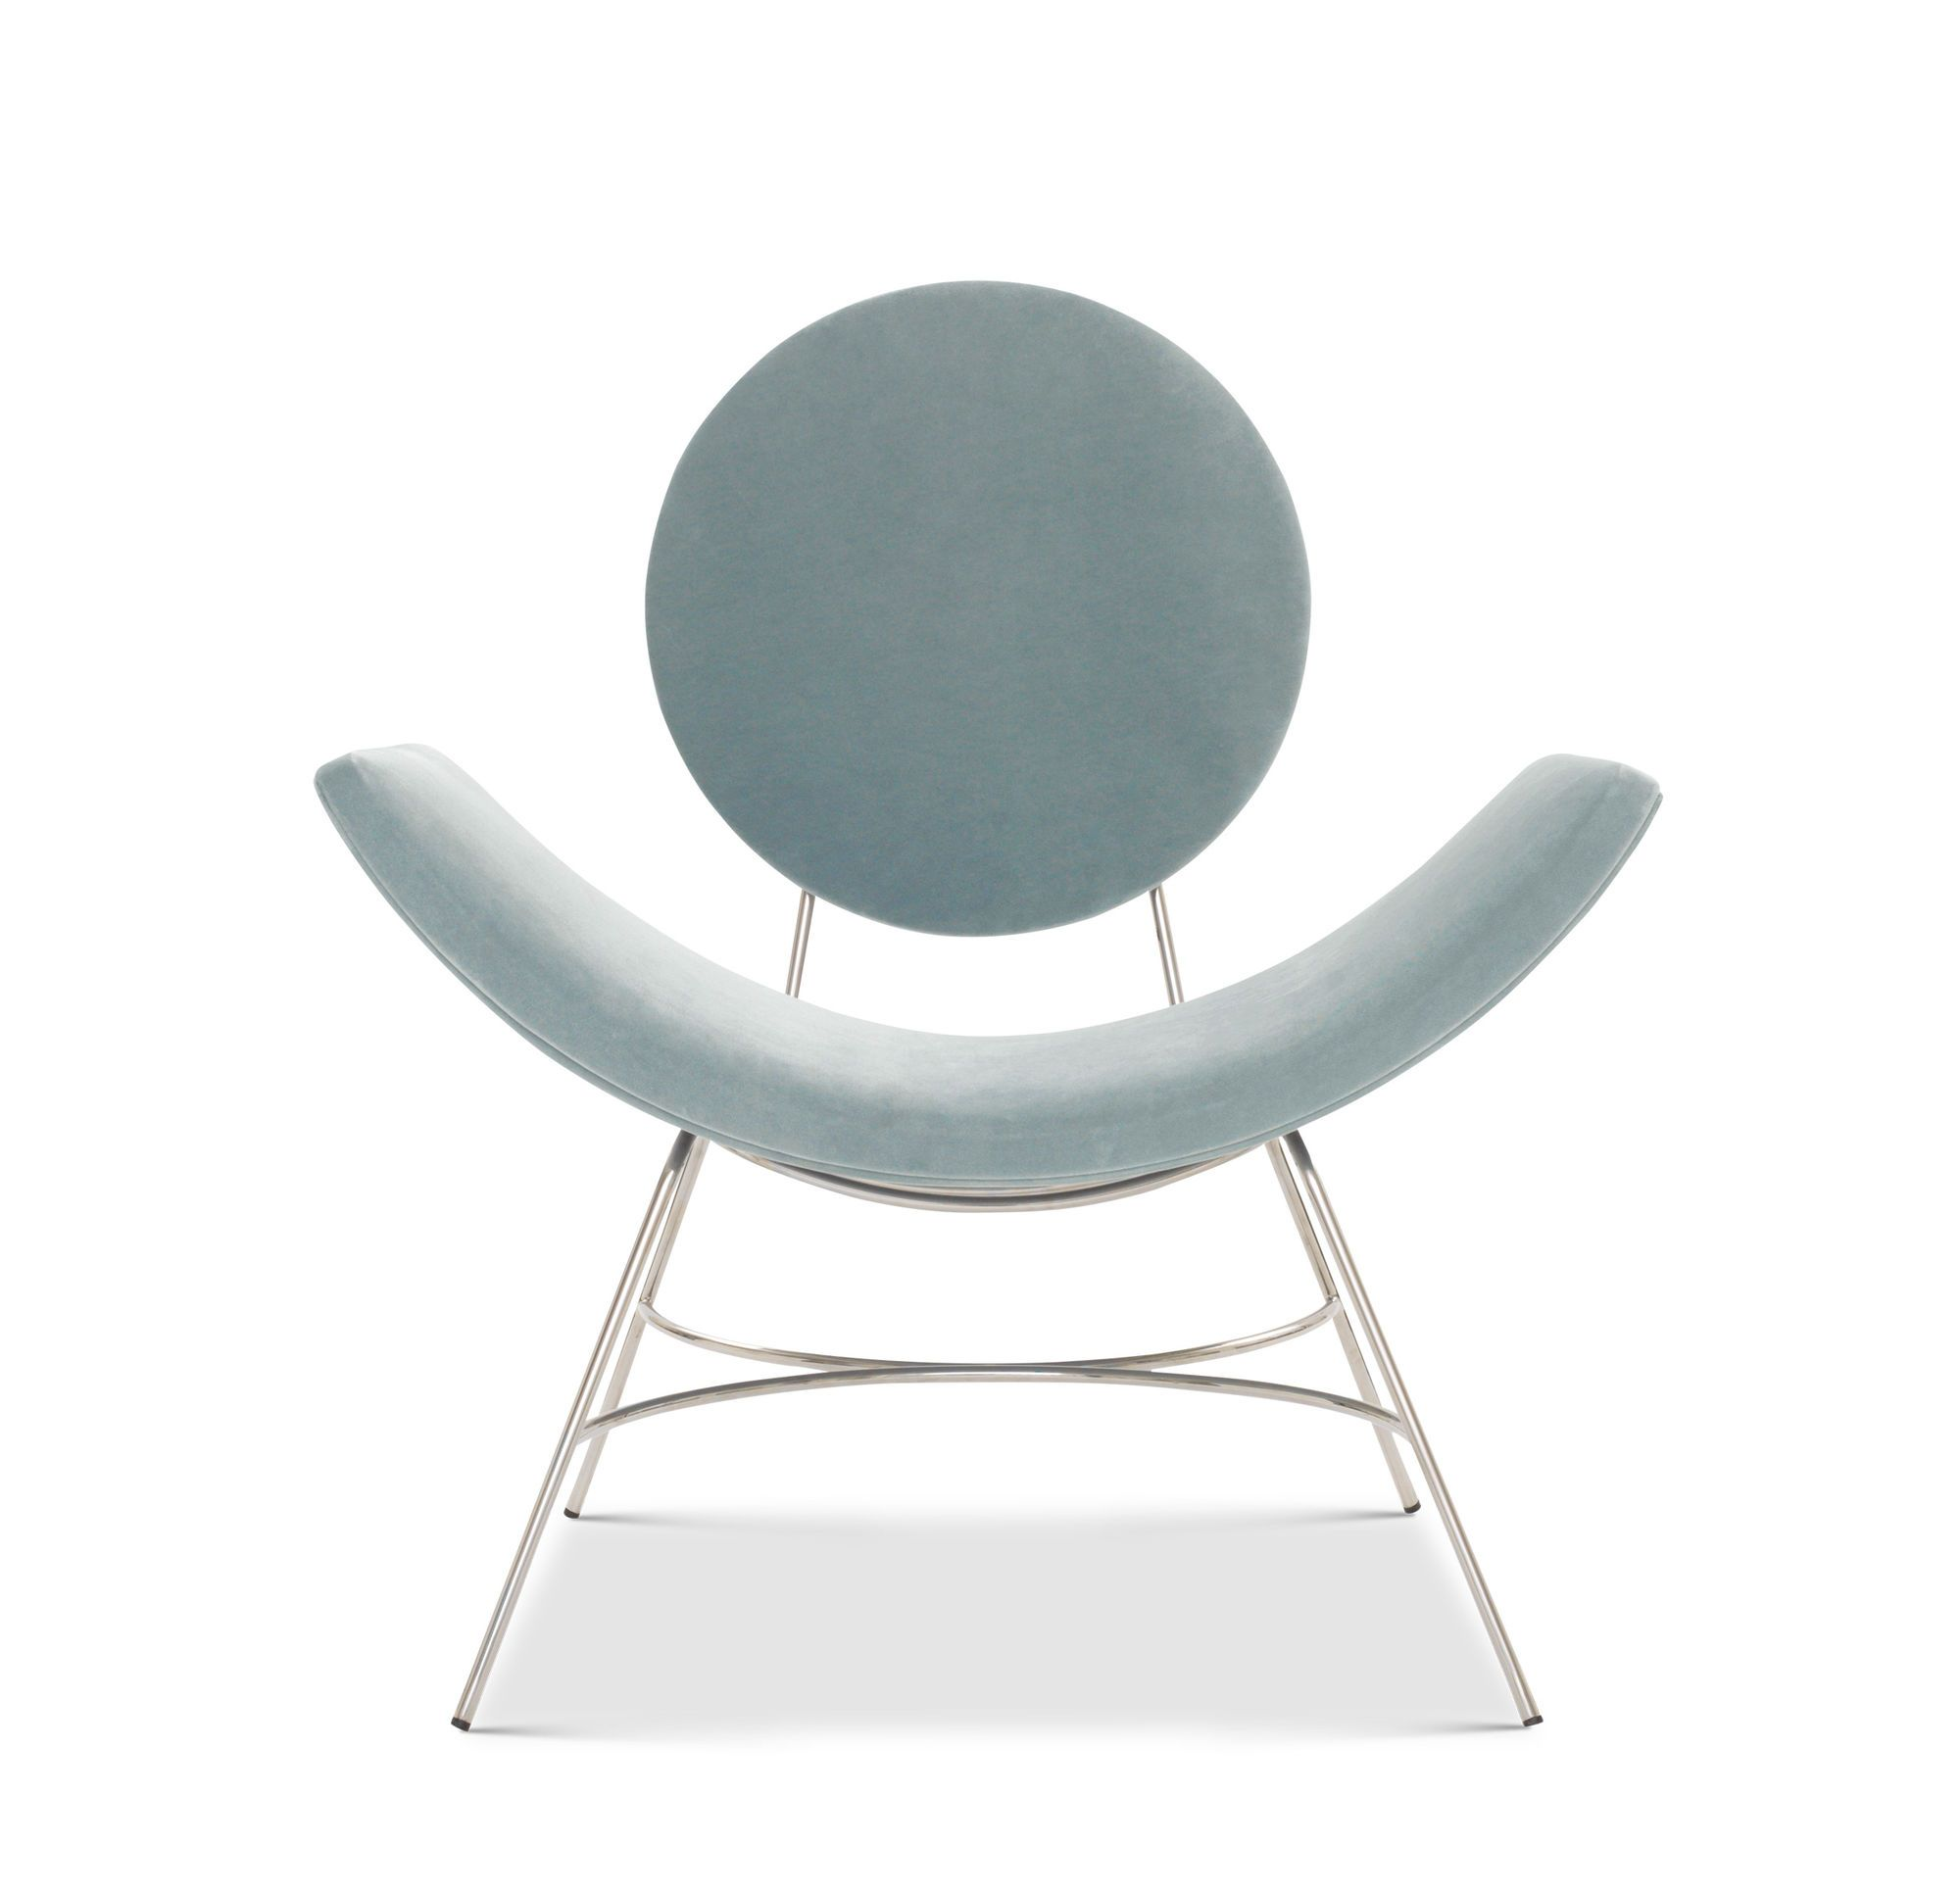 Elroy Chair Mitchell Gold Bob Williams In 2020 Chair Elroy Chair Style